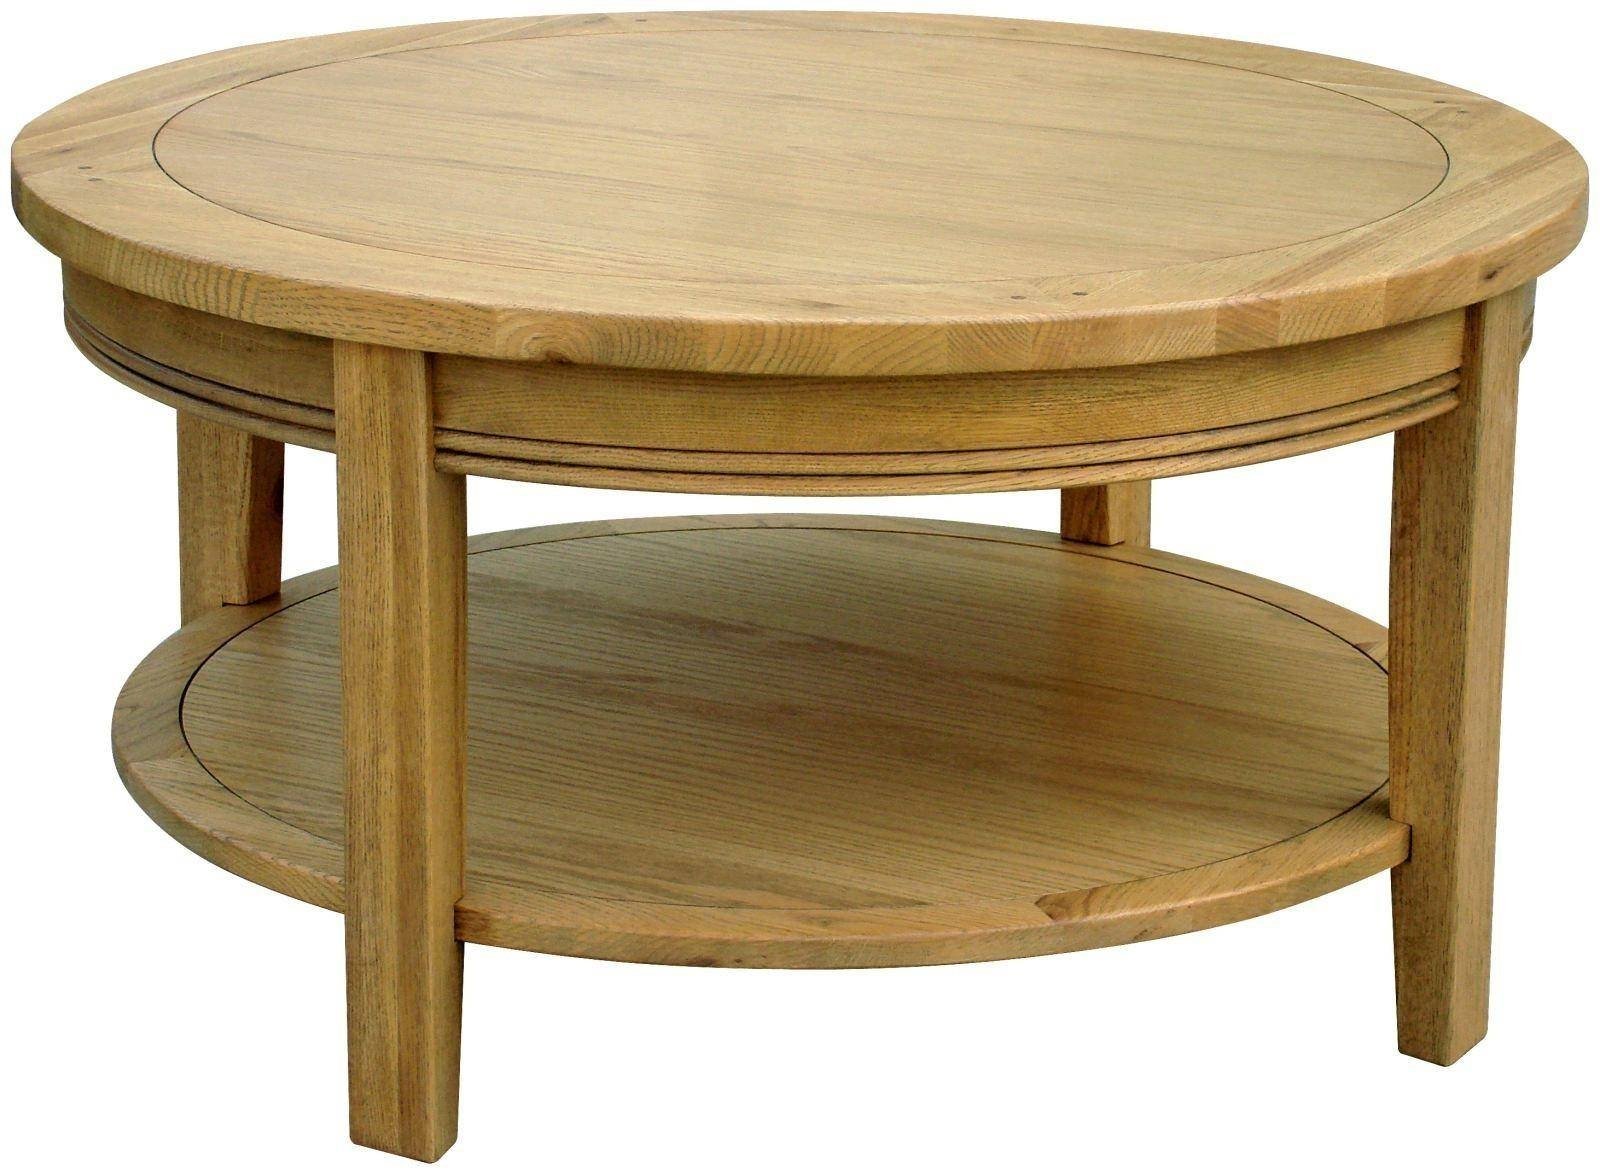 Small Round Pine Coffee Table - Look Here — Coffee Tables Ideas inside Round Pine Coffee Tables (Image 28 of 30)